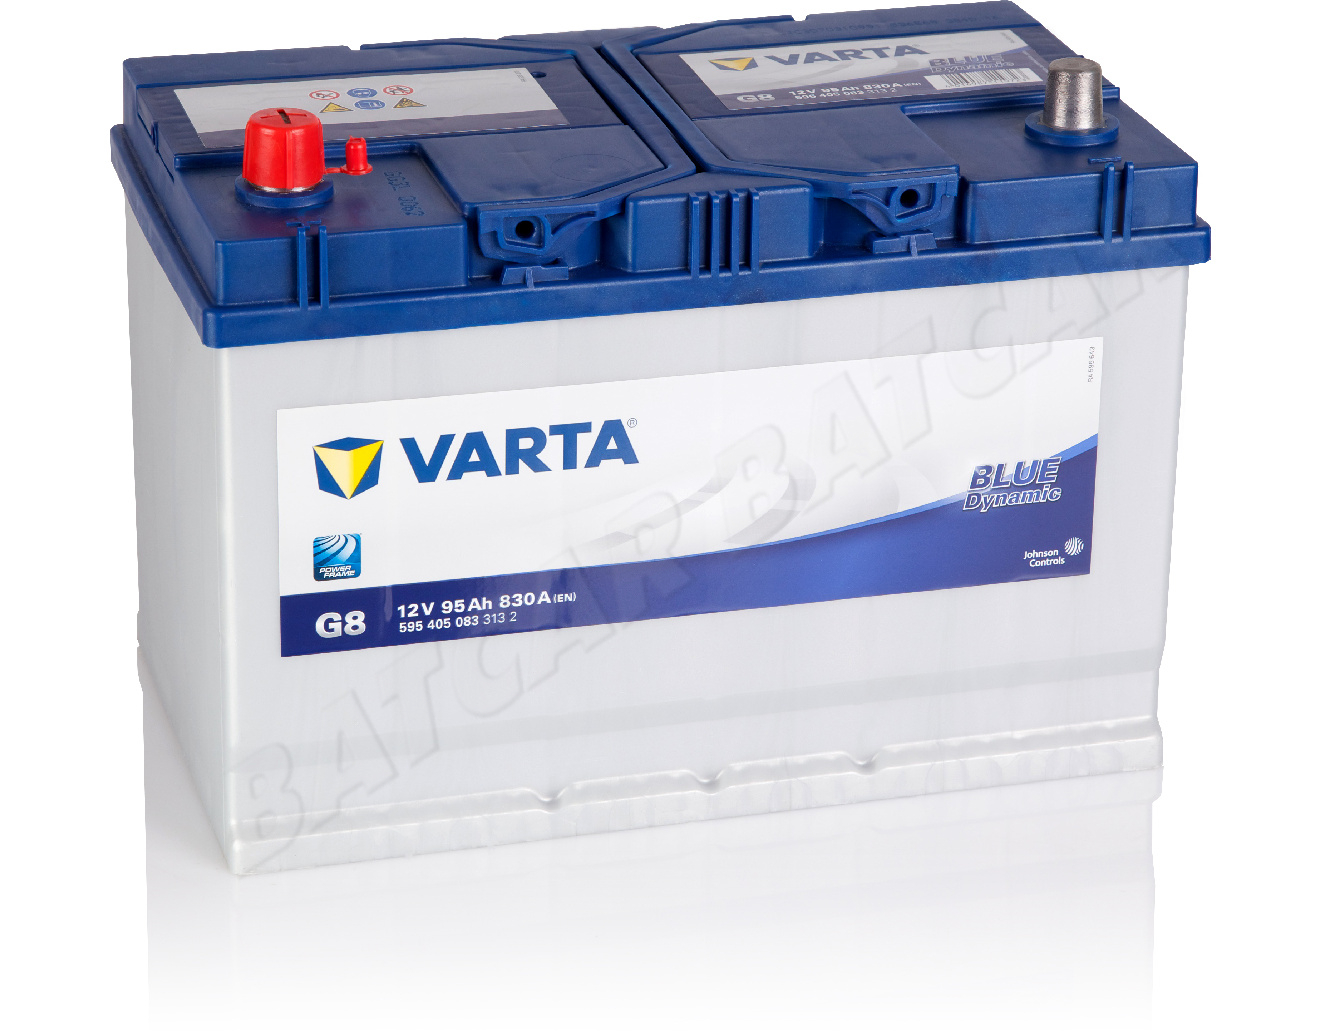 varta 95 ah starterbatterie g8 blue dynamic 12v 95ah. Black Bedroom Furniture Sets. Home Design Ideas